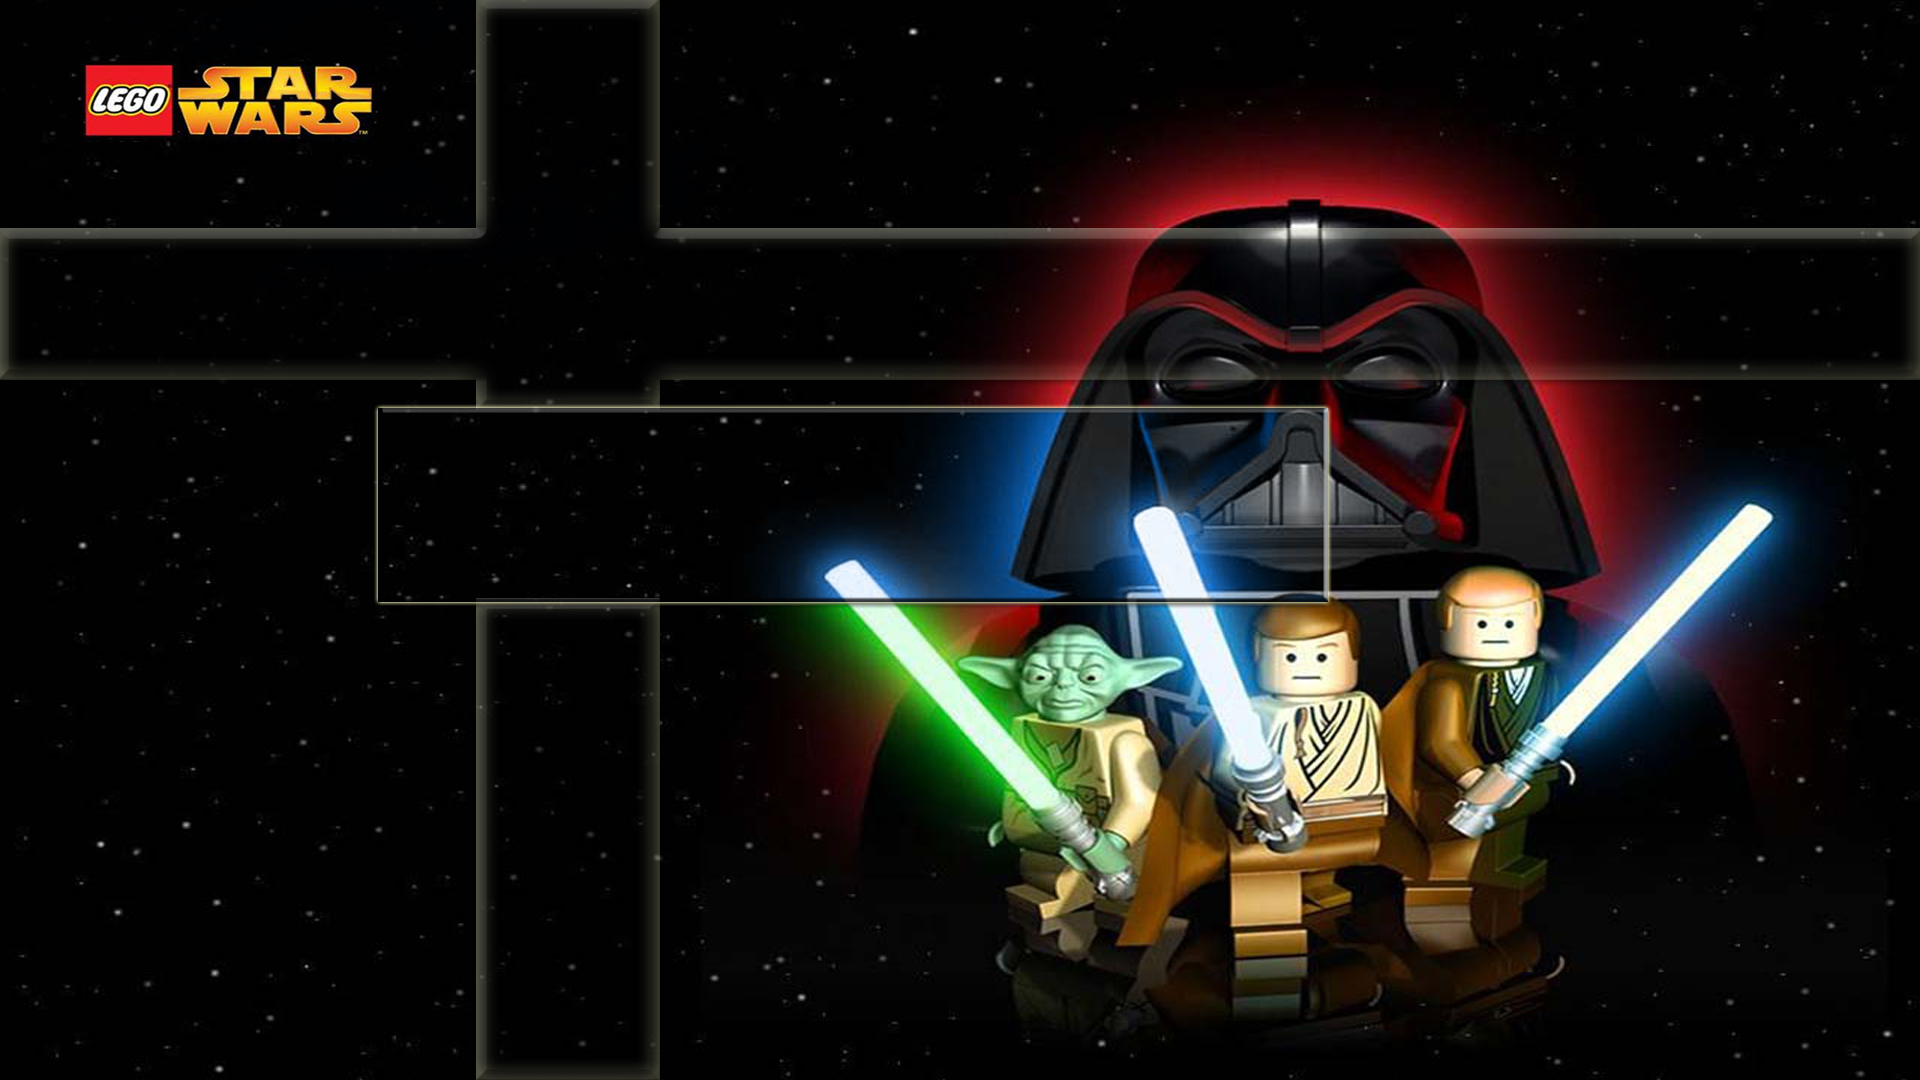 Lego Star Wars Wallpapers - Coloring Pages | Wallpapers ...